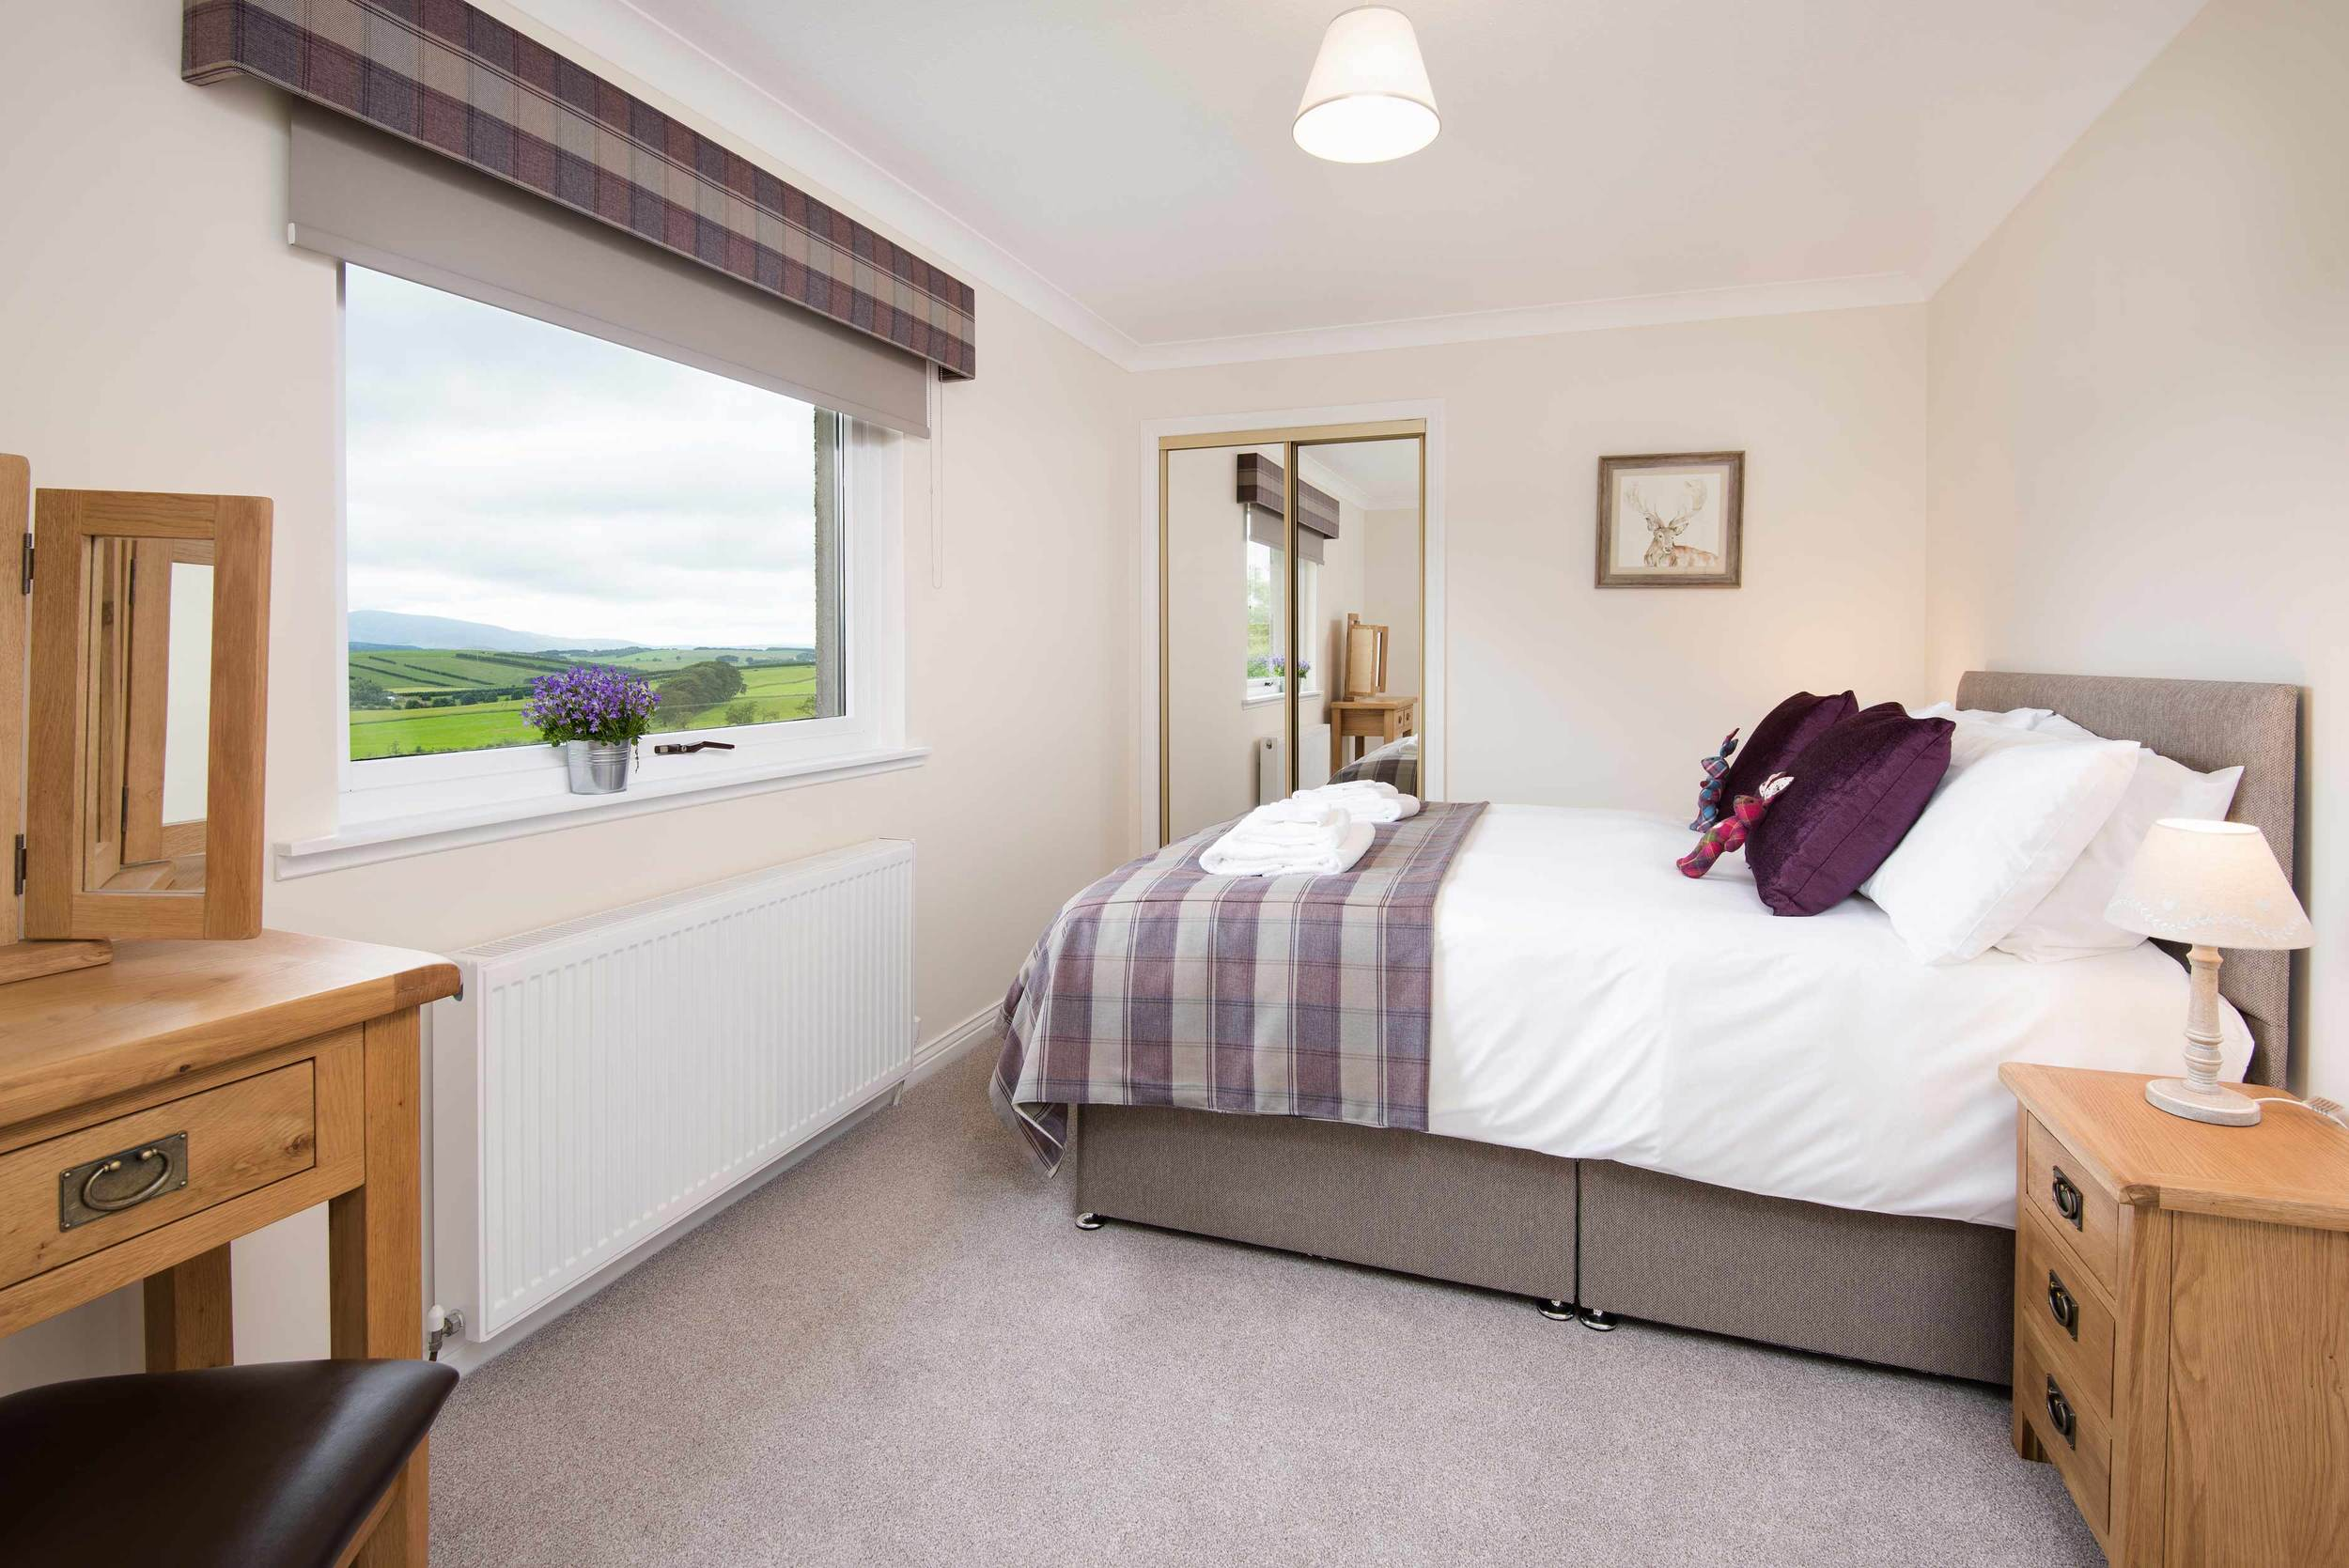 Comfortably sleeping four people, the cottage features a large double bedroom with a king size bed and a twin bedroom. A full size fold up bed is available for use in the double bedroom when required.